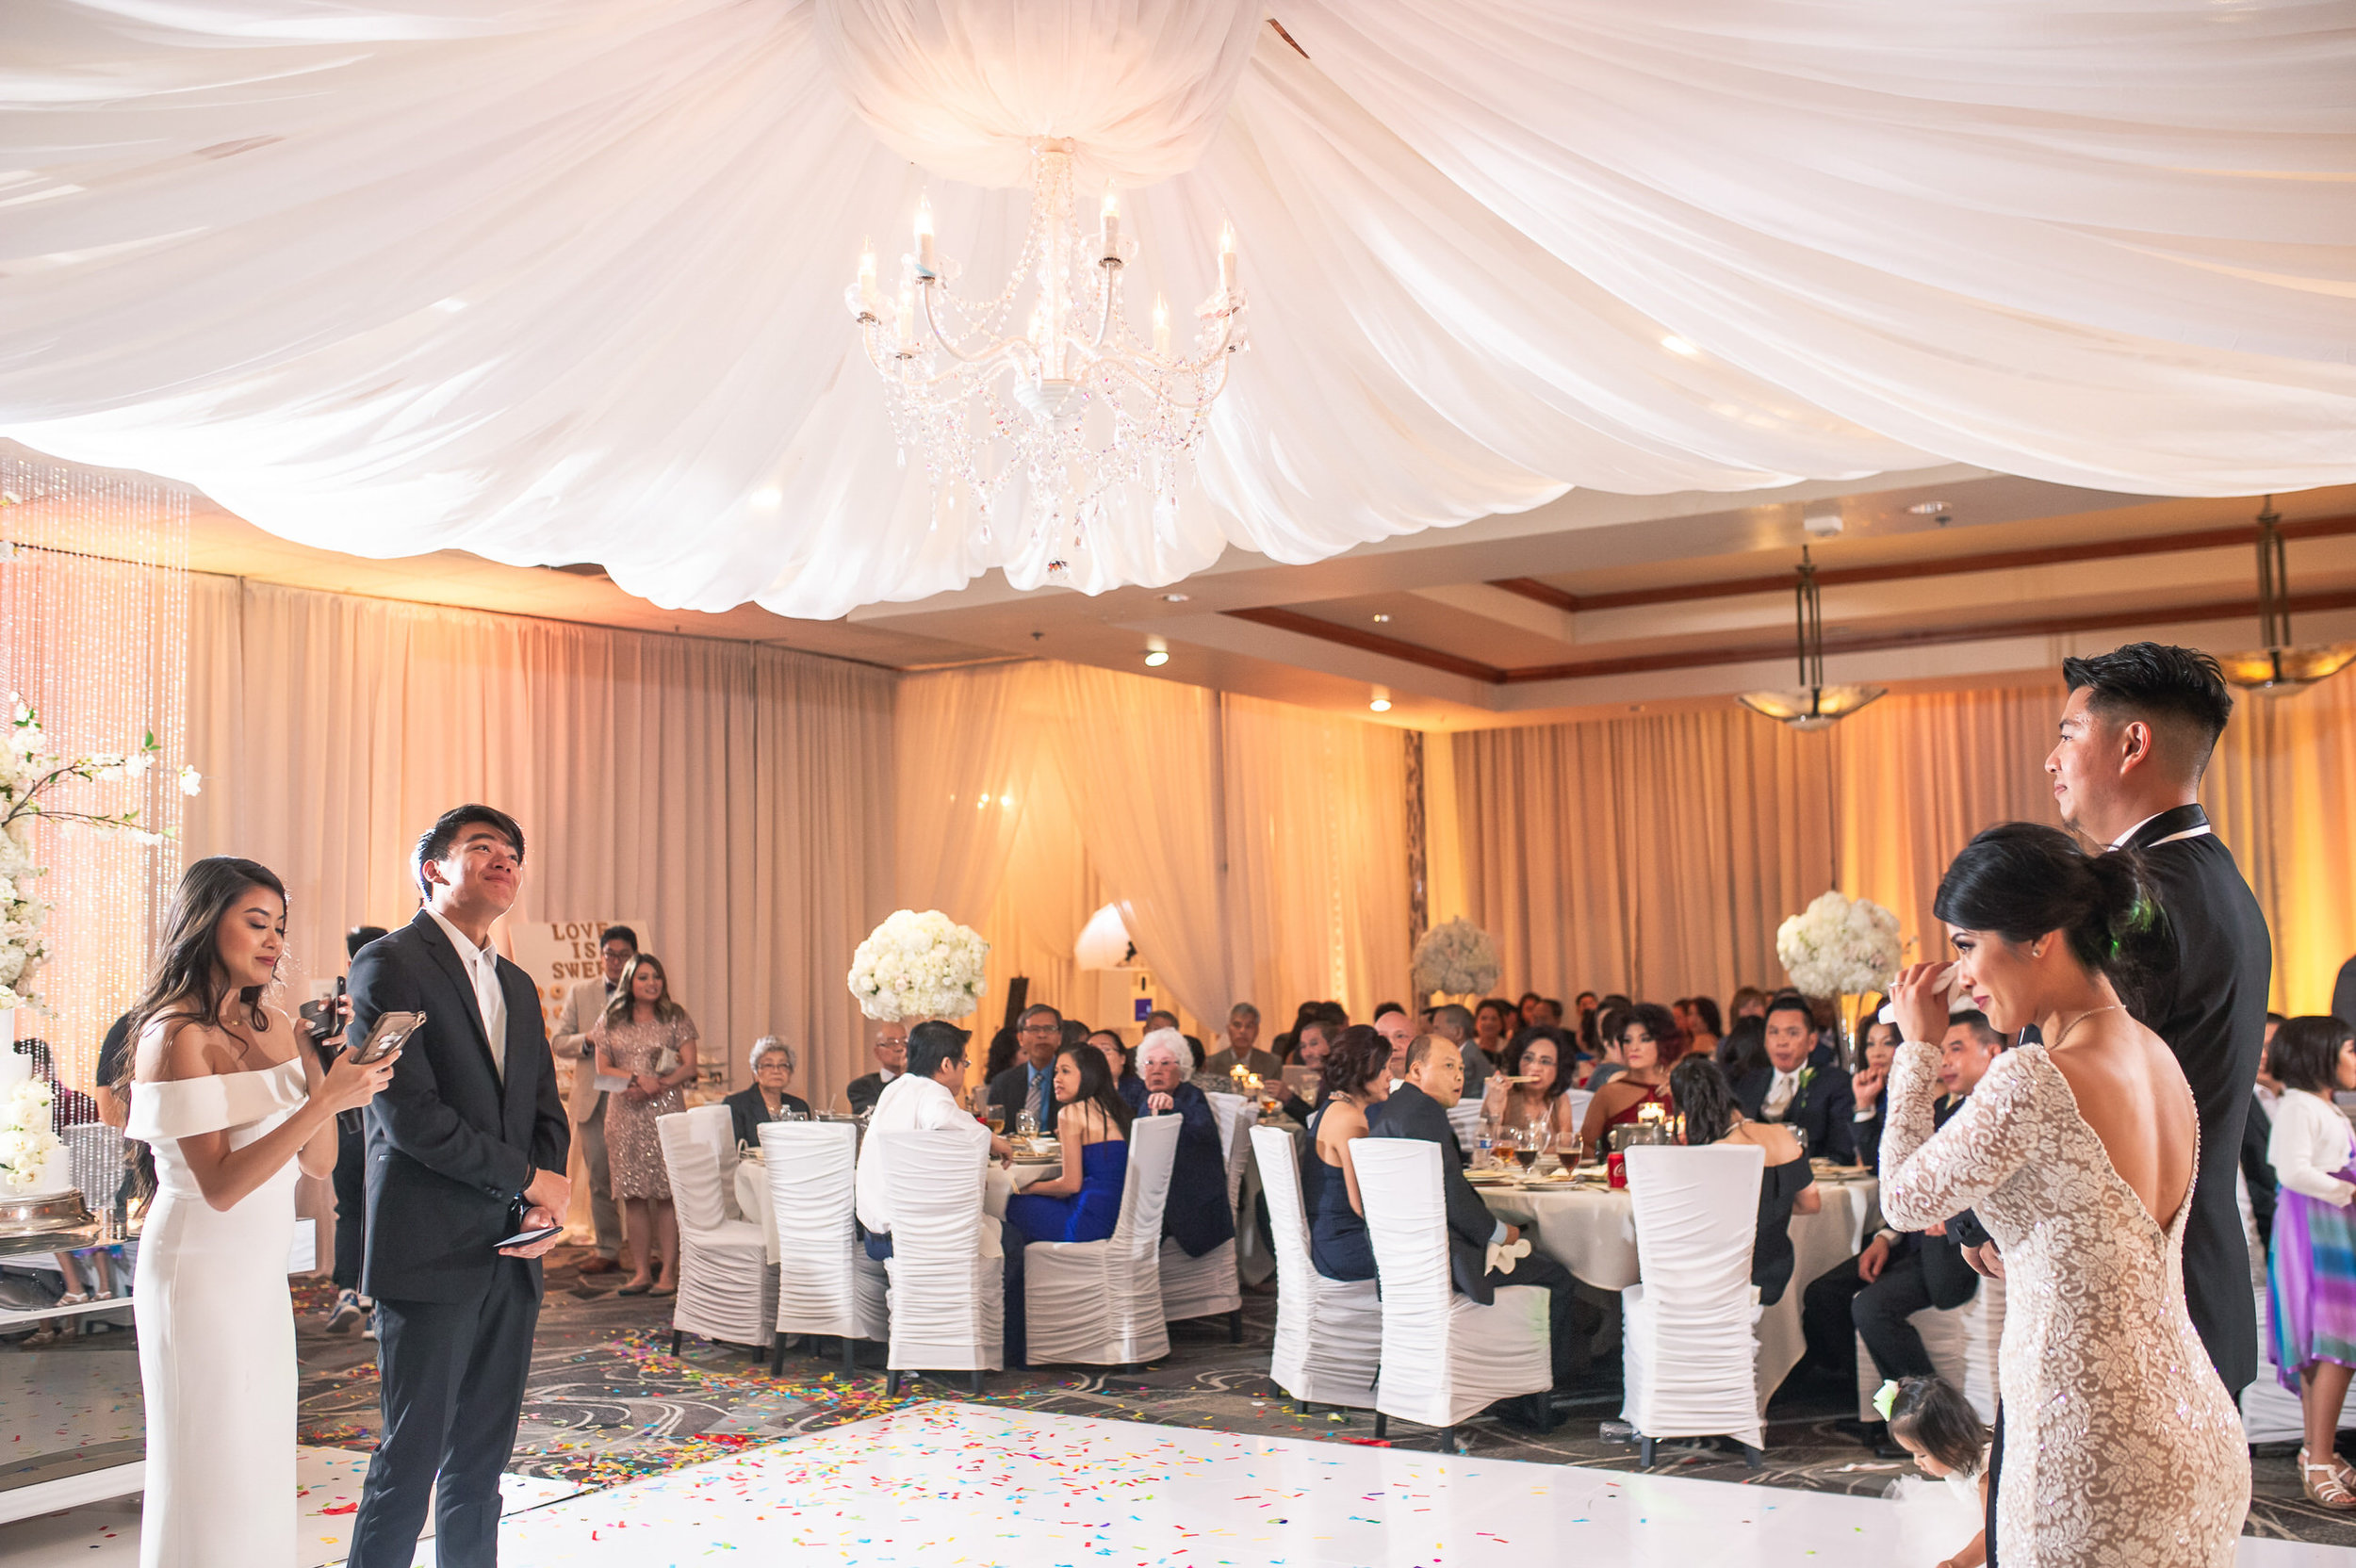 Dream_Wedding_Thanh_Thanh-21191.jpg